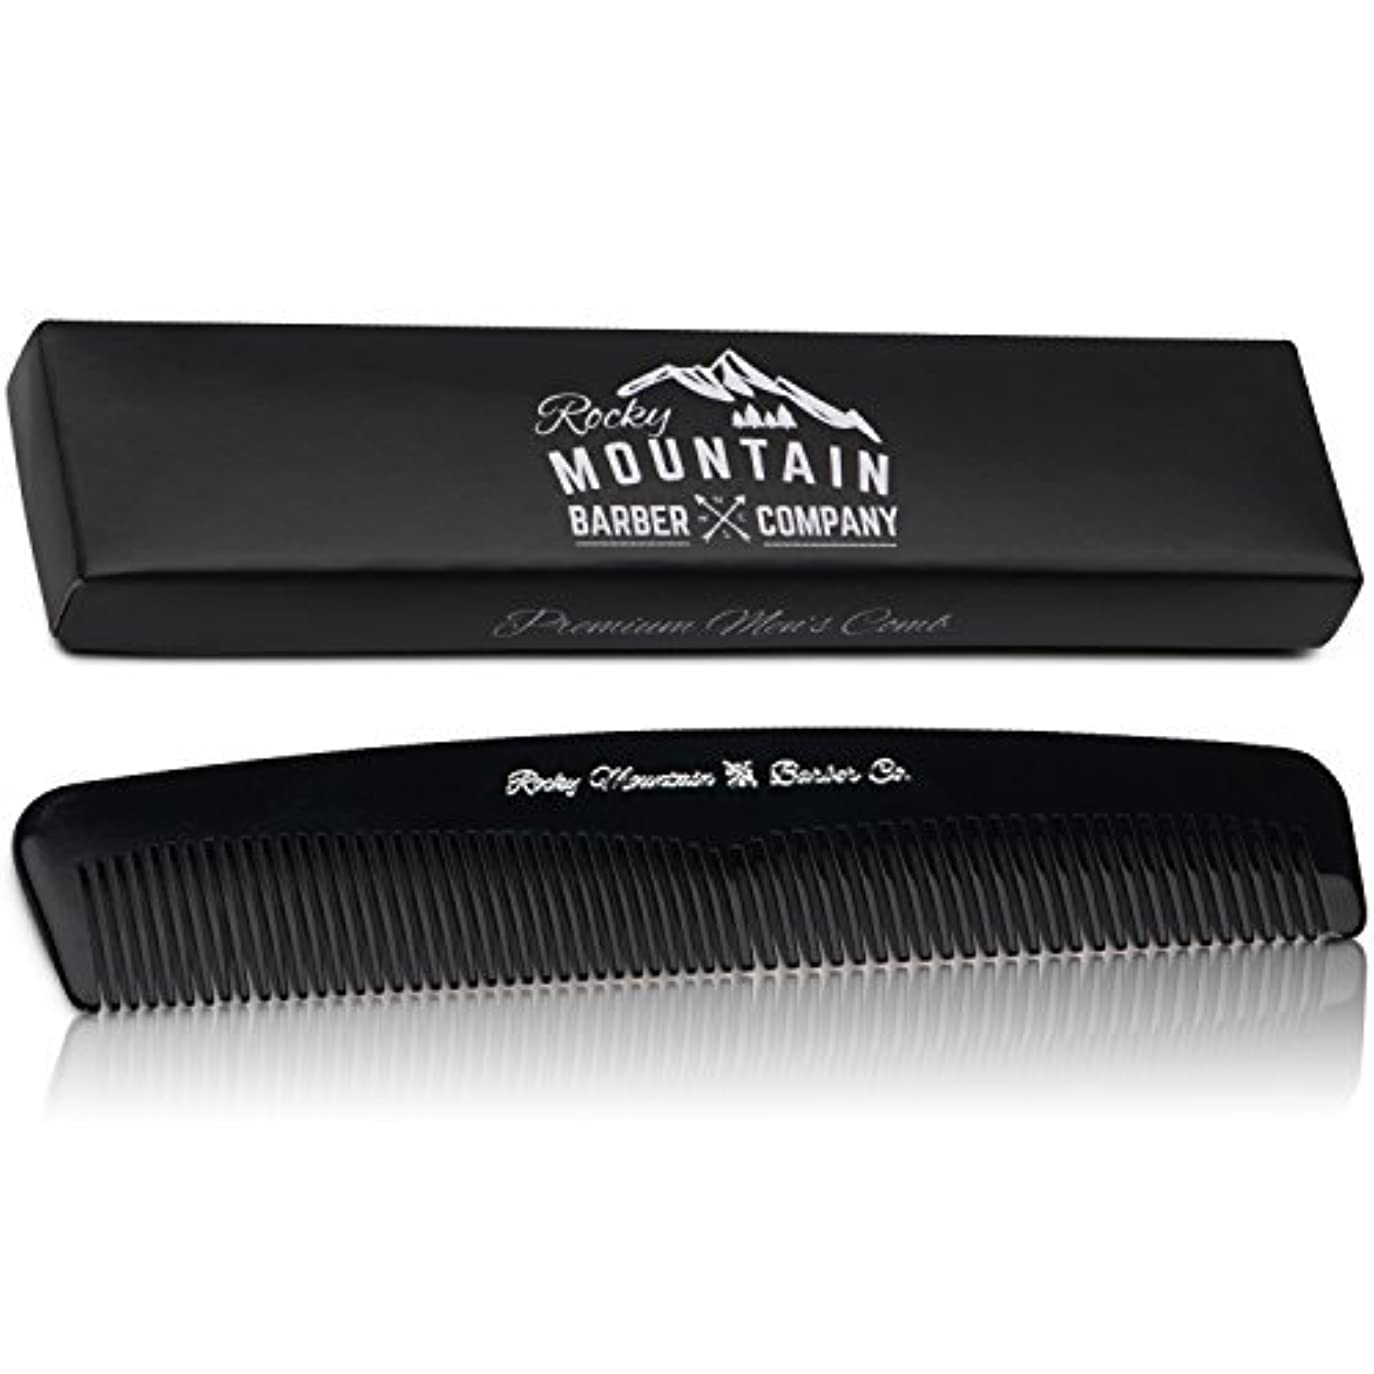 たらい静かに気難しいMen's Hair Comb ? Plastic Modern Fine and Medium Tooth Comb Handmade for Head Hair, Beard,  Mustache - No Snag, Barber Grade Performance in Gift Box by Rocky Mountain Barber Company [並行輸入品]